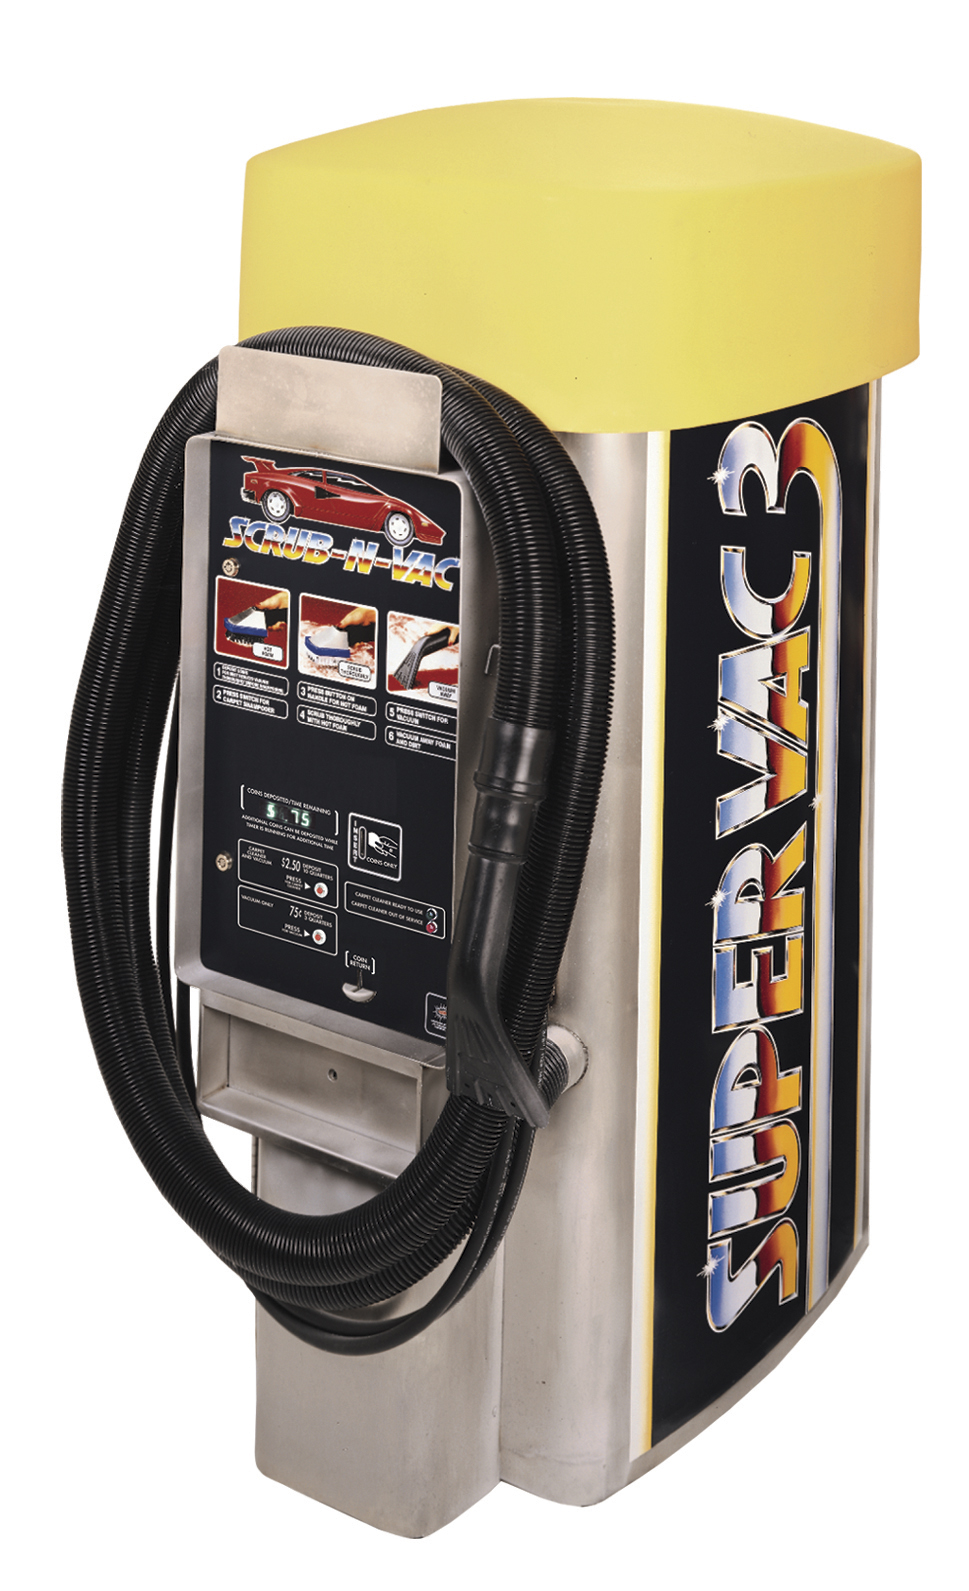 Vacuums – Coleman Hanna Carwash Systems